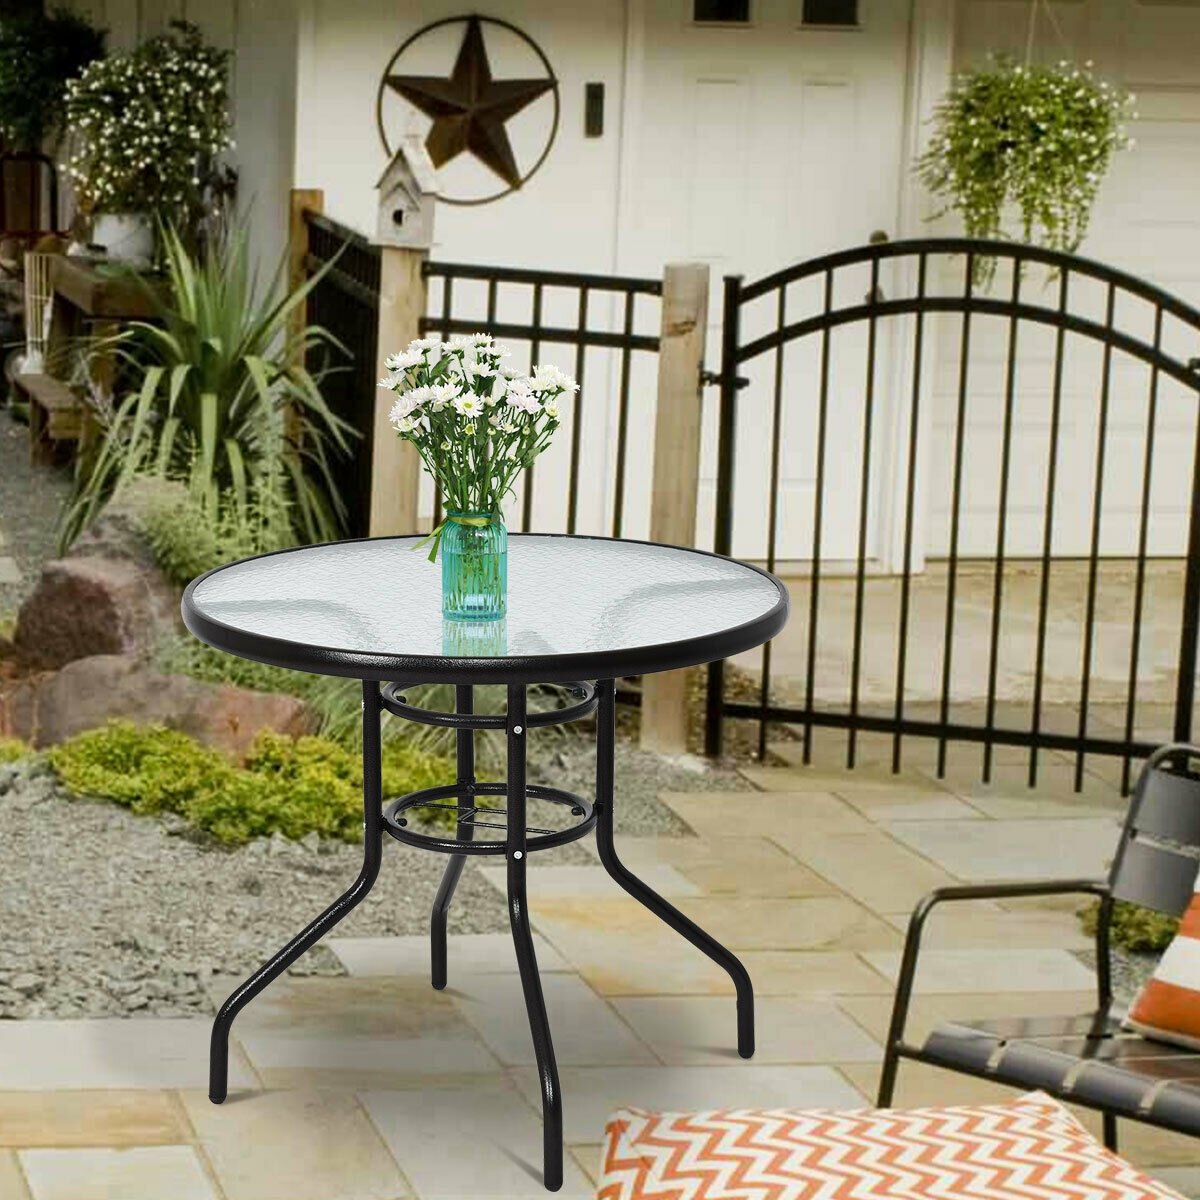 Patio Round Table Steel Frame Dining Table